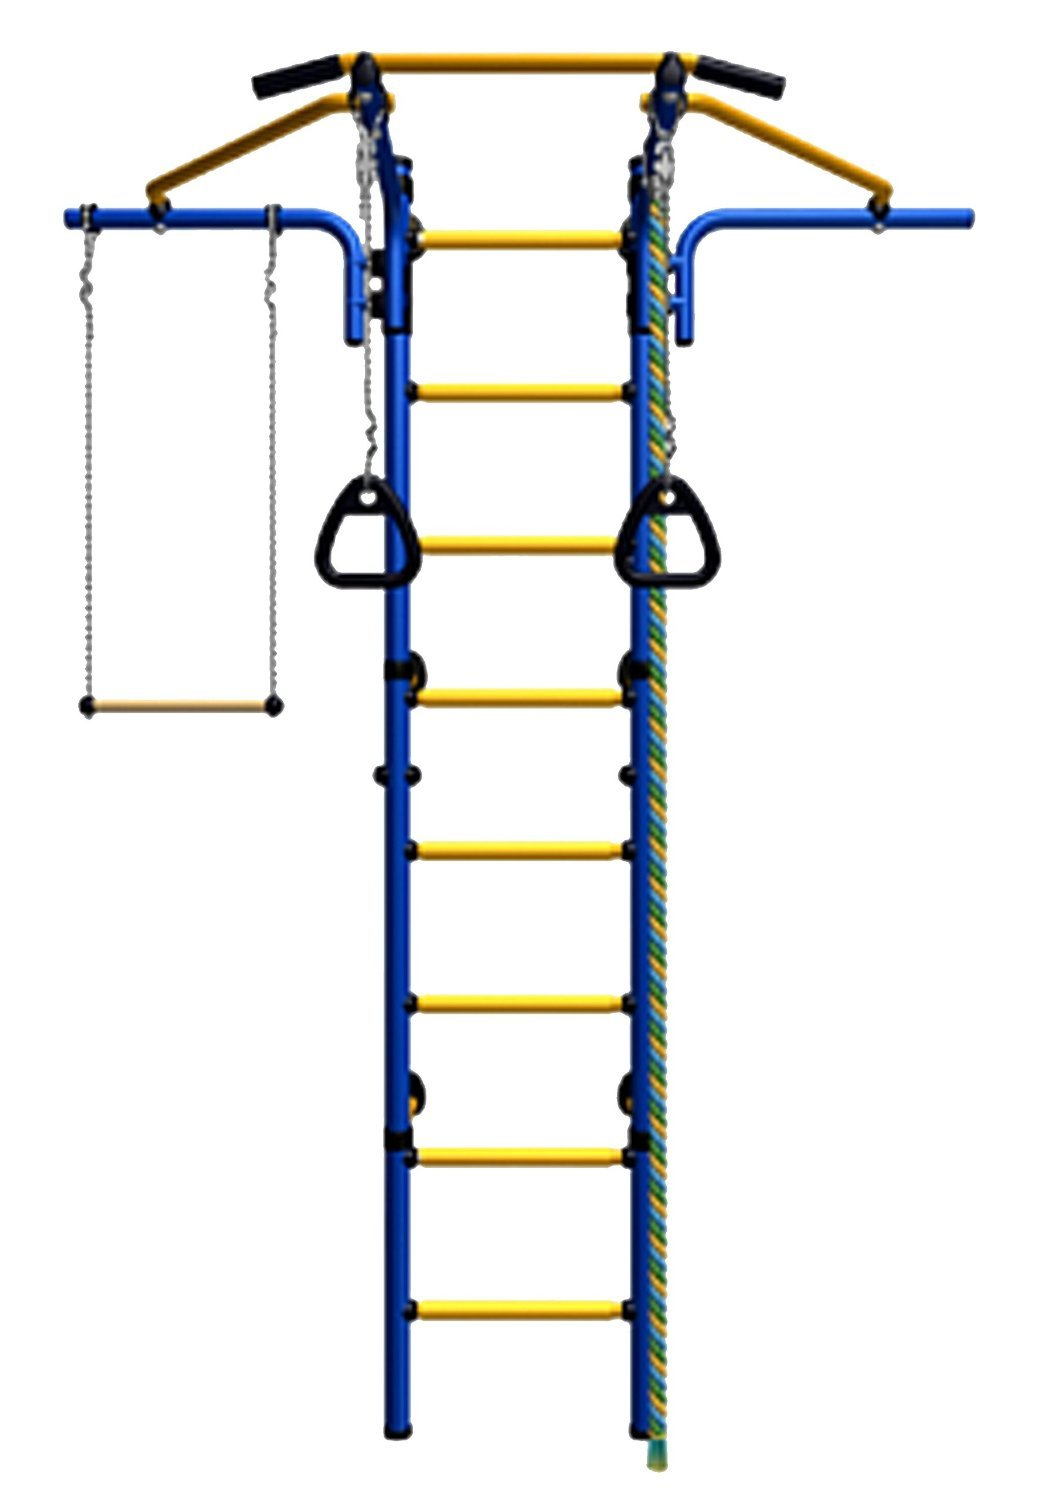 Kids Indoor Sport Playground /Wall Mounted Gym Training Set with Trapeze Bar Swing, Climber, Climbing Rope, Jump Rope, Gymnastic Rings / Suit for Backyard, School and Playroom / Comet Next 2 (Blue)